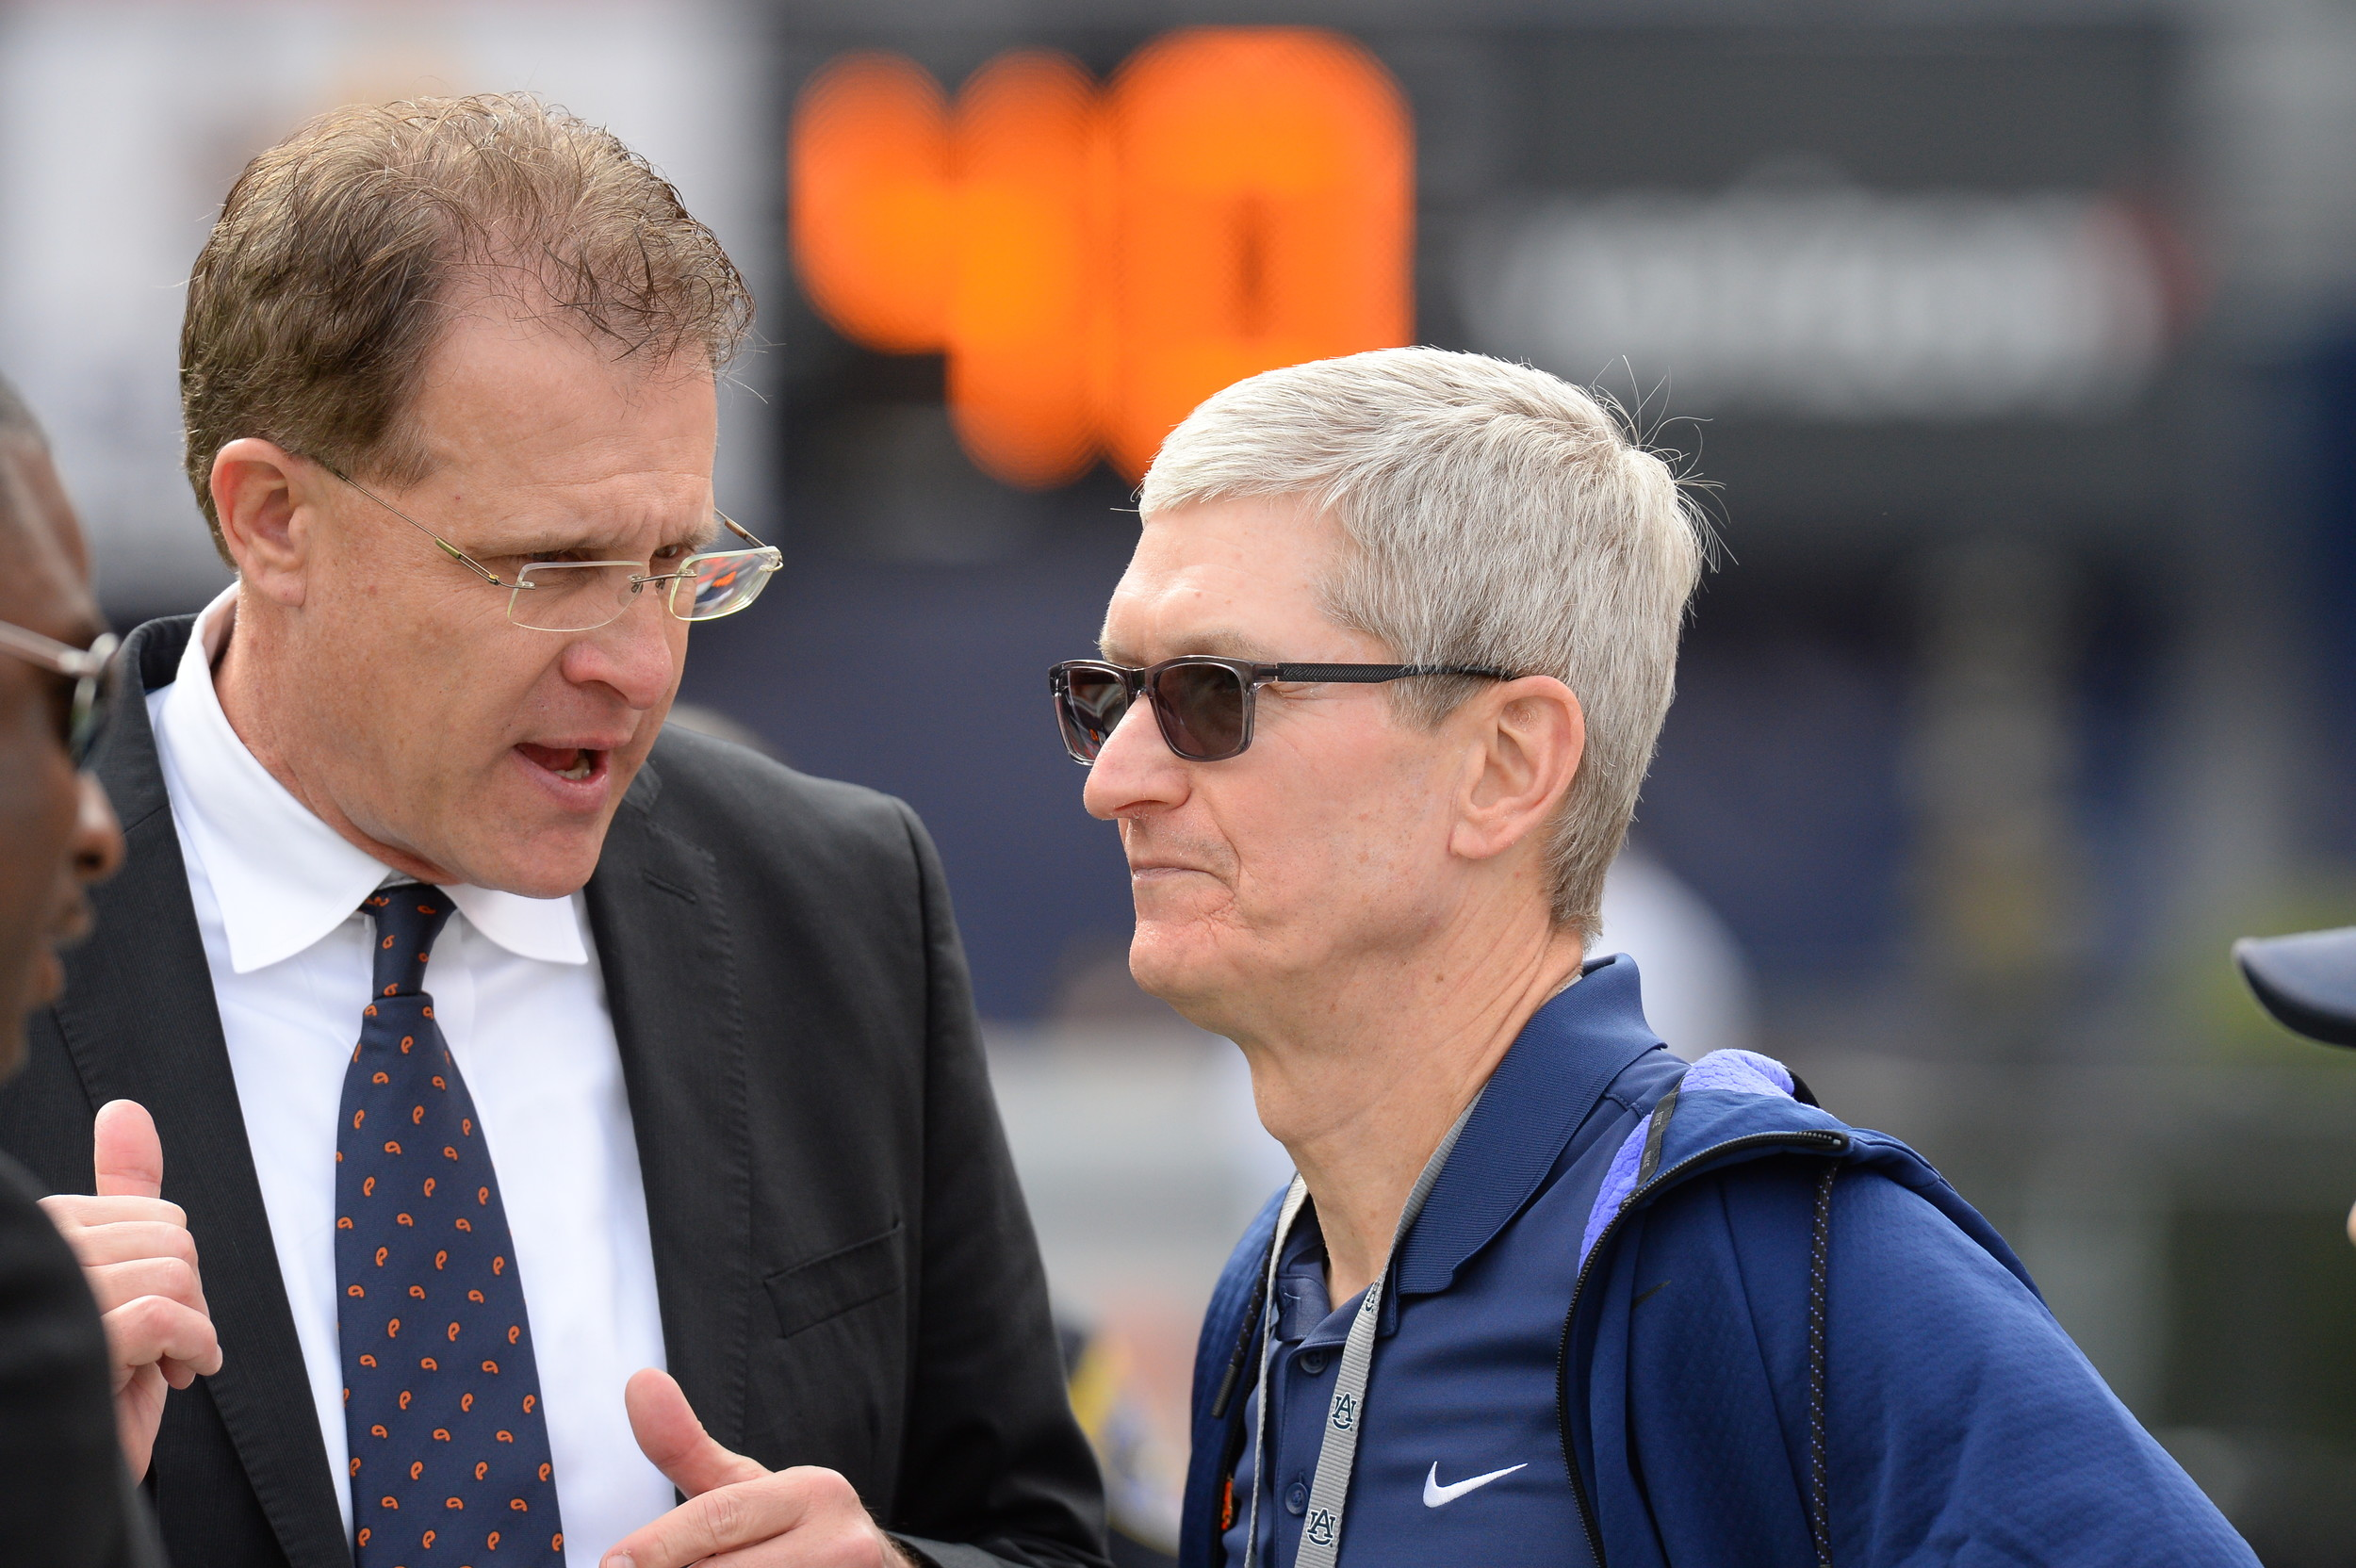 Auburn Tigers head coach Guz Malzahn and Apple's Tim Cook talk prior to Saturday's game, at Jordan-Hare Stadium.